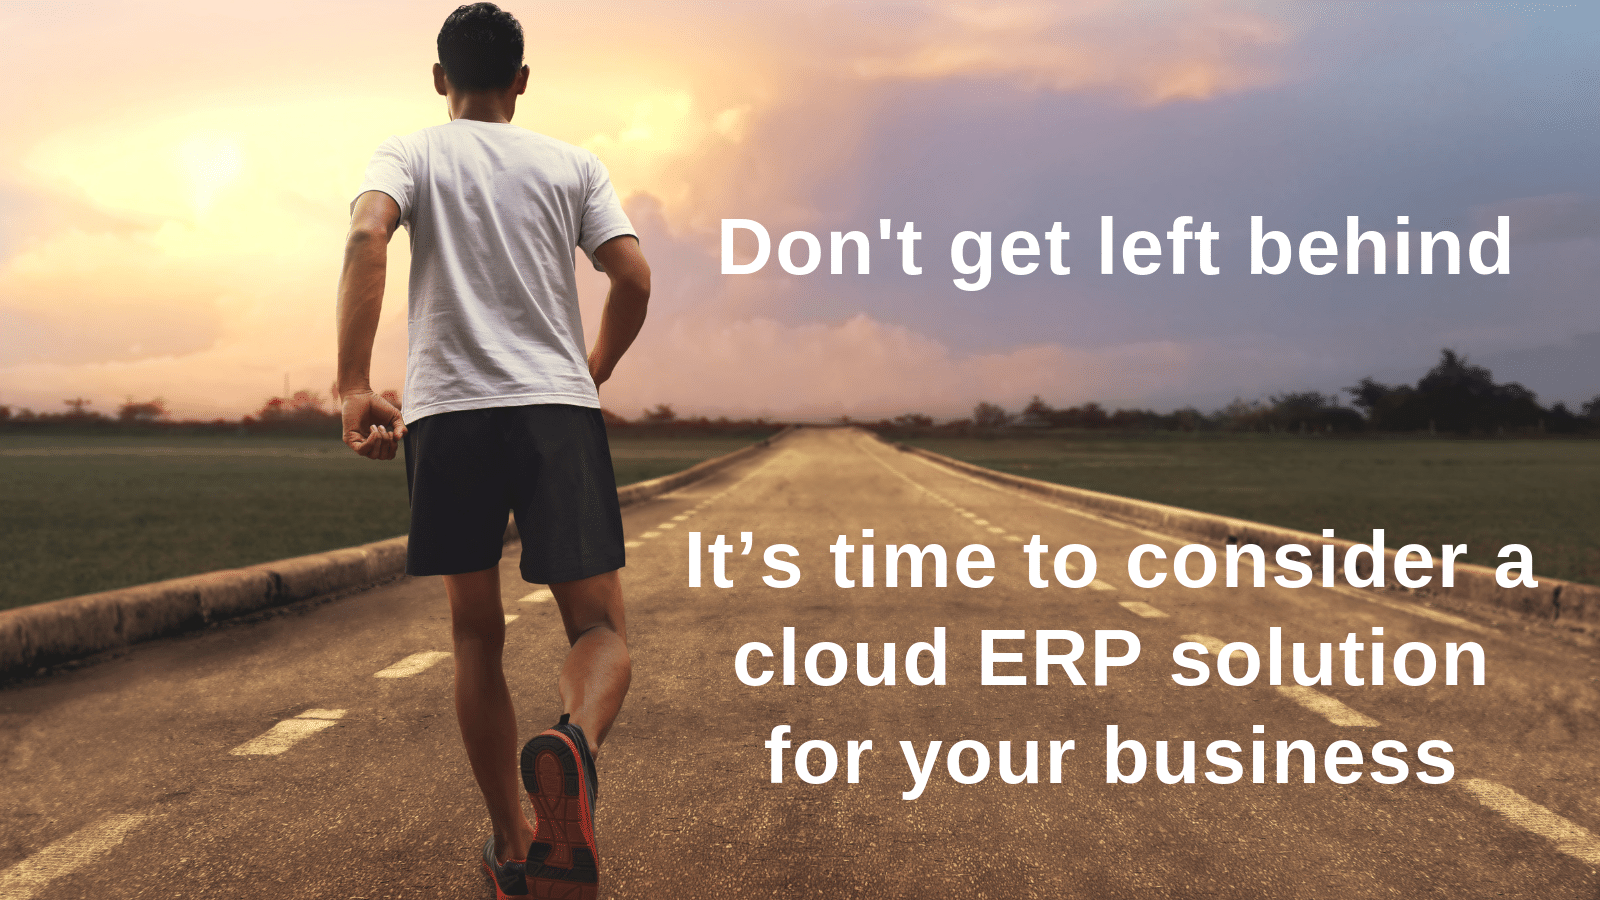 Don't get left behind. It's time to consider a cloud solution for your ERP business.